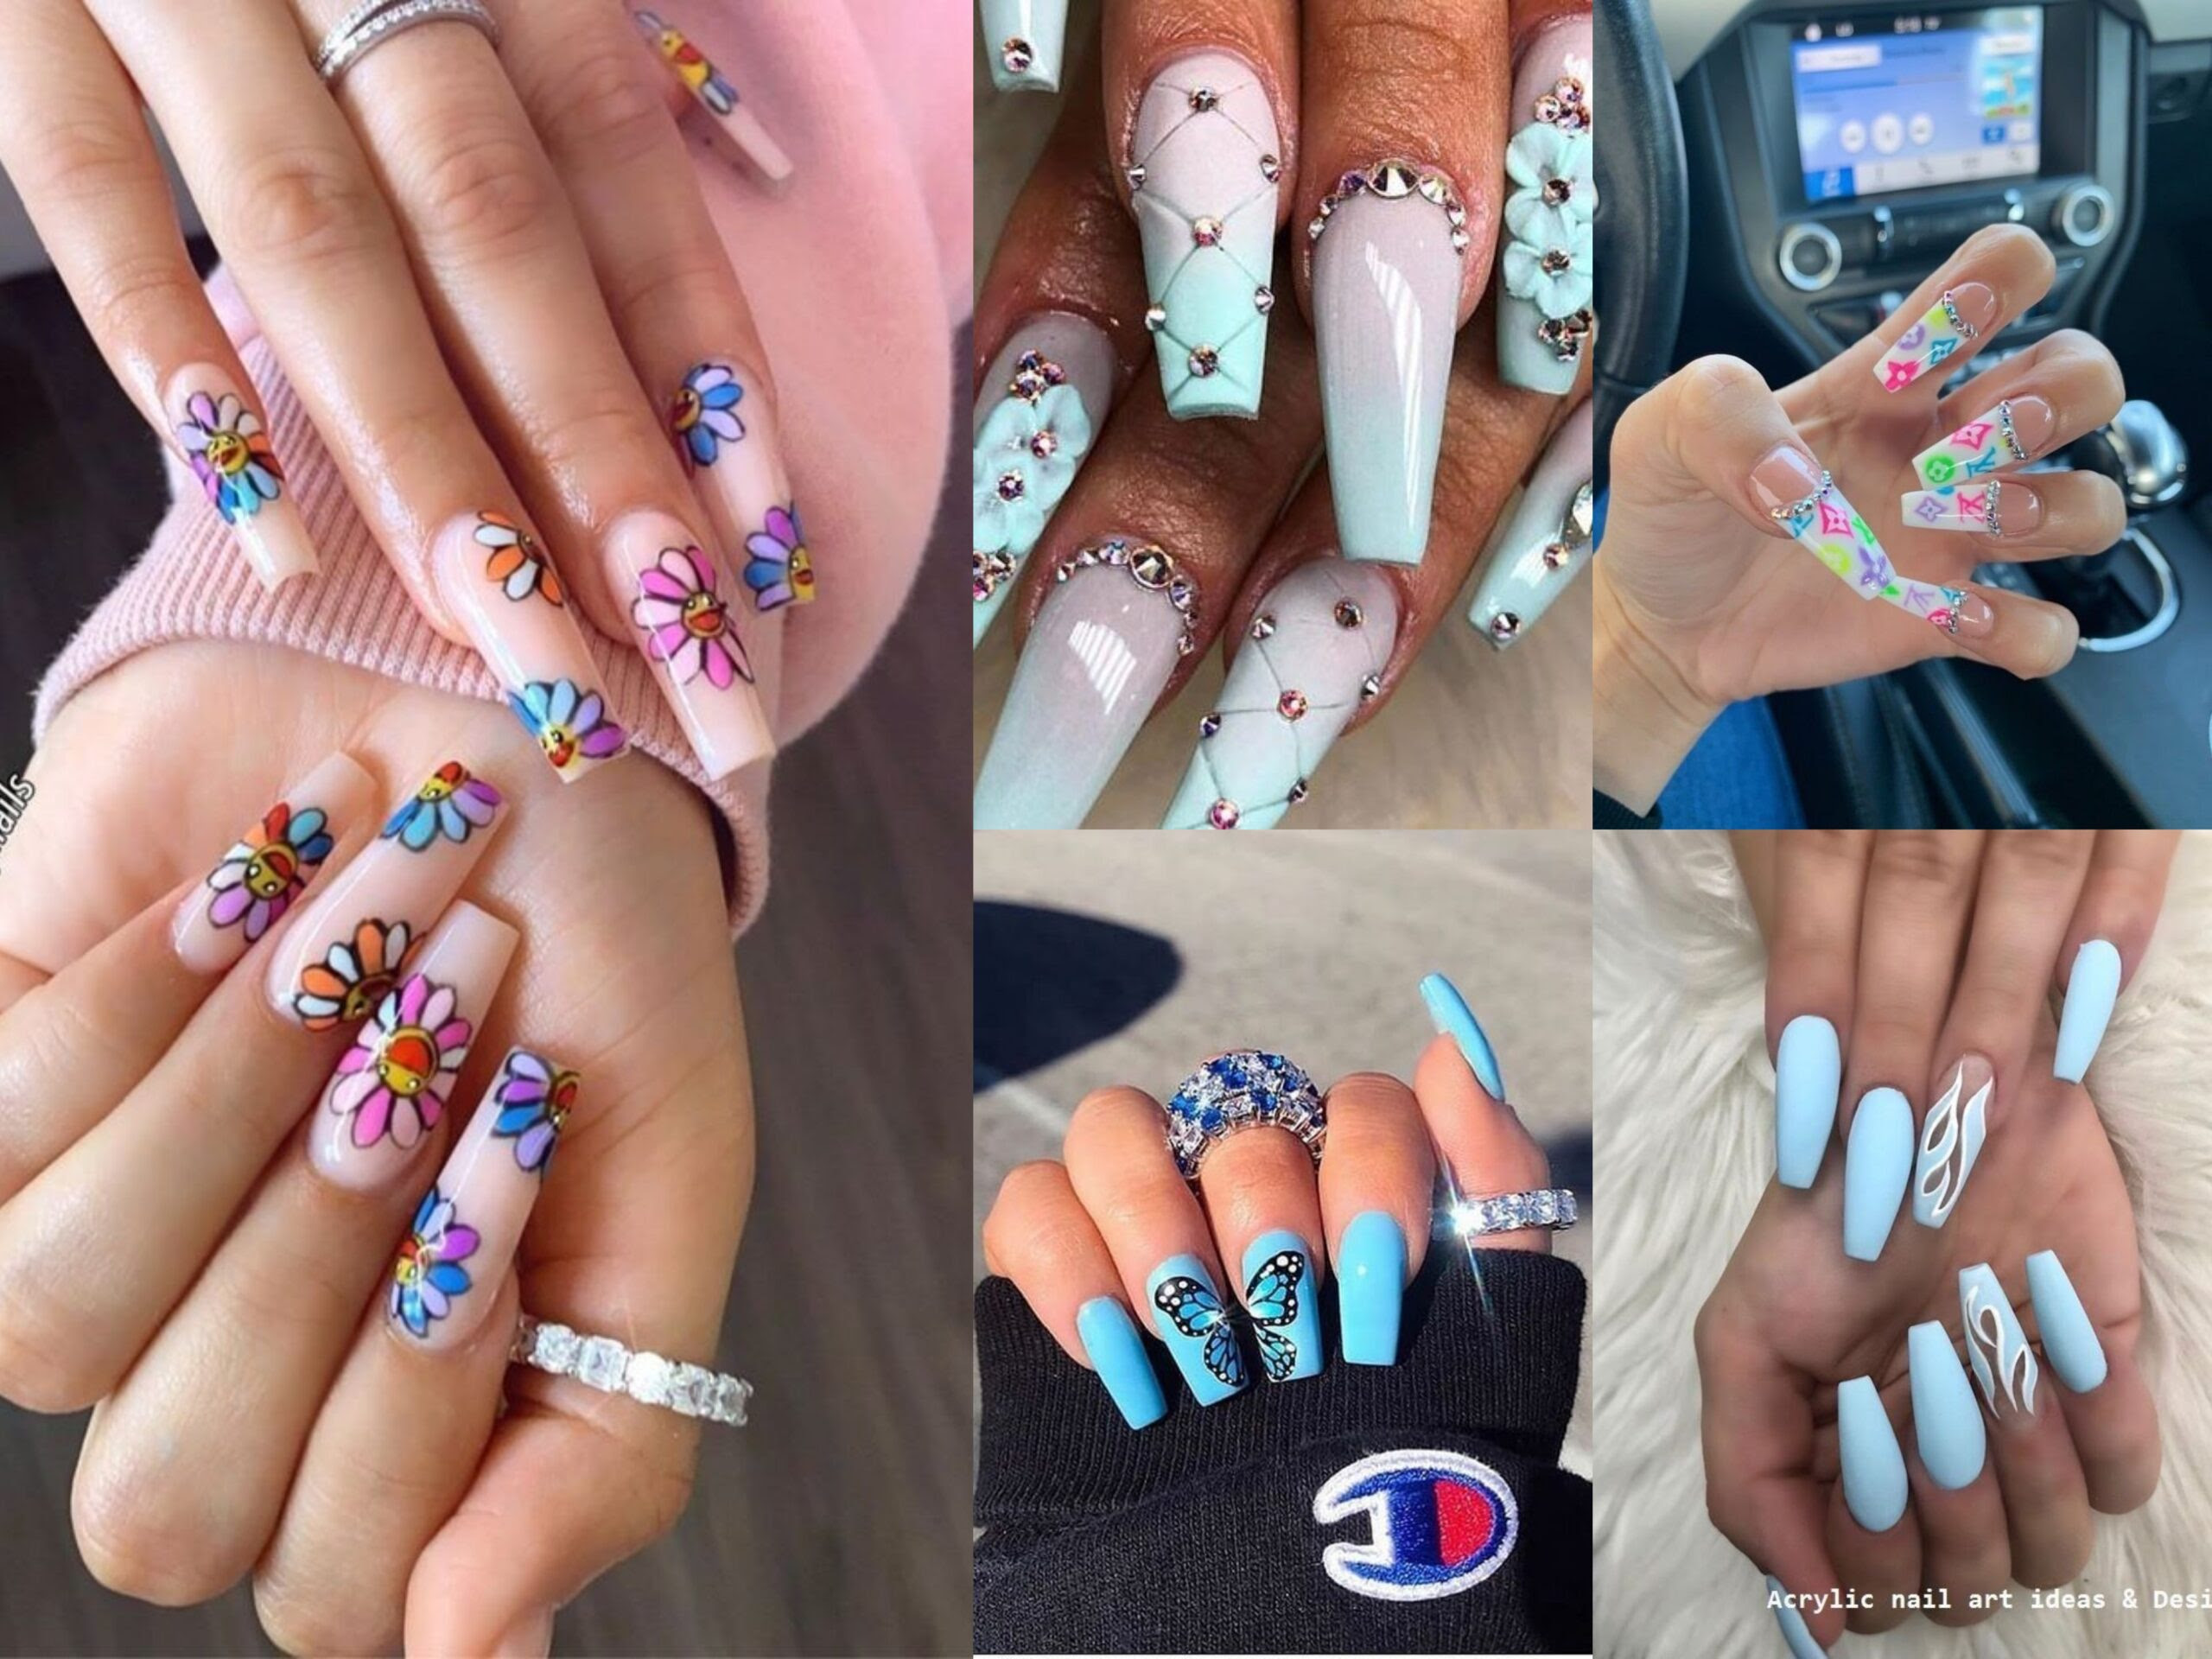 20 Cool Acrylic Nail Art Designs And Ideas To Carry Your Attitude Top Fashion News